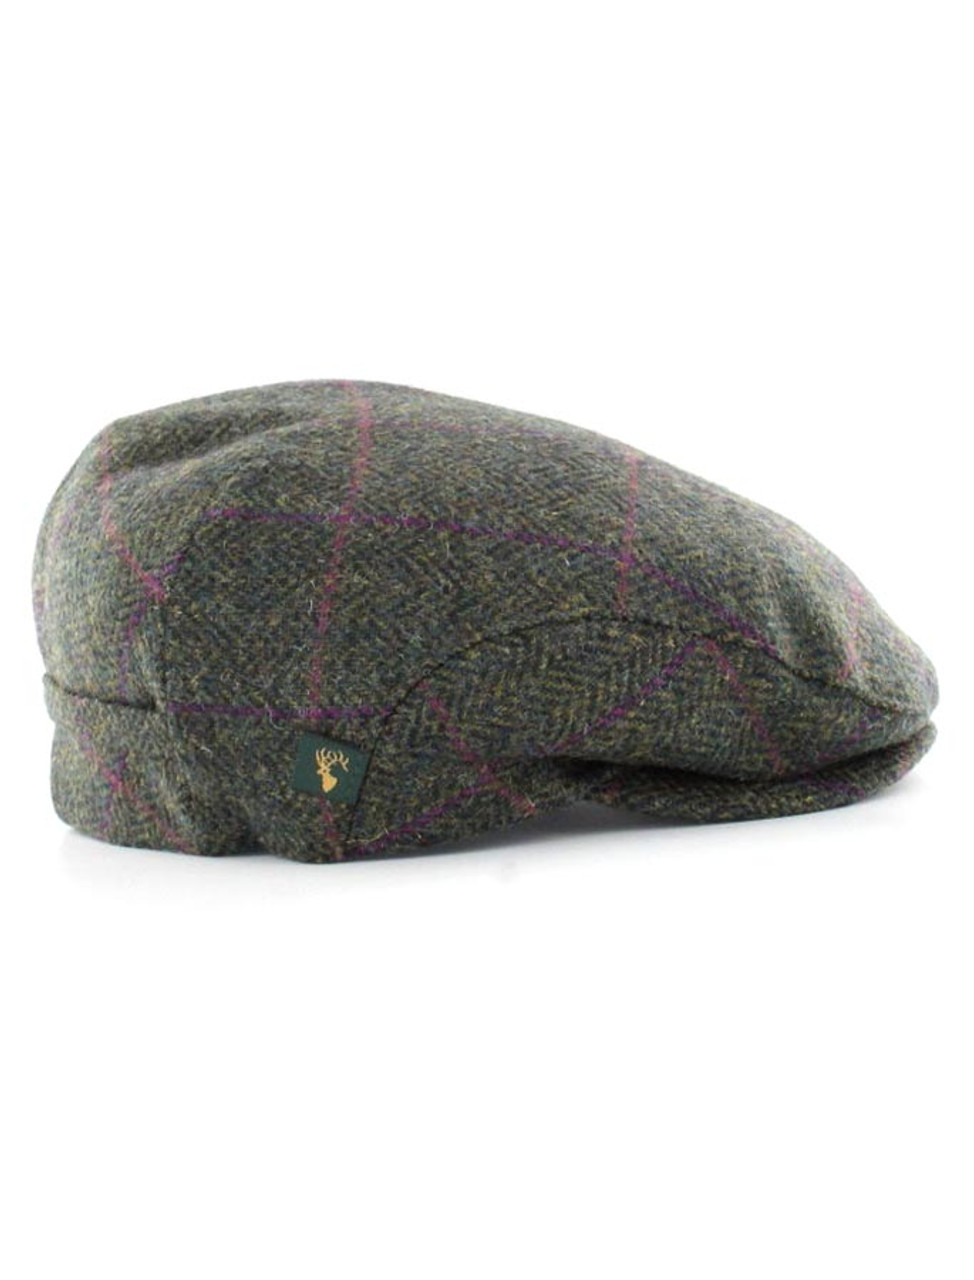 Trinity Tweed Flat Cap - Green with Pink  b0e5997dc84